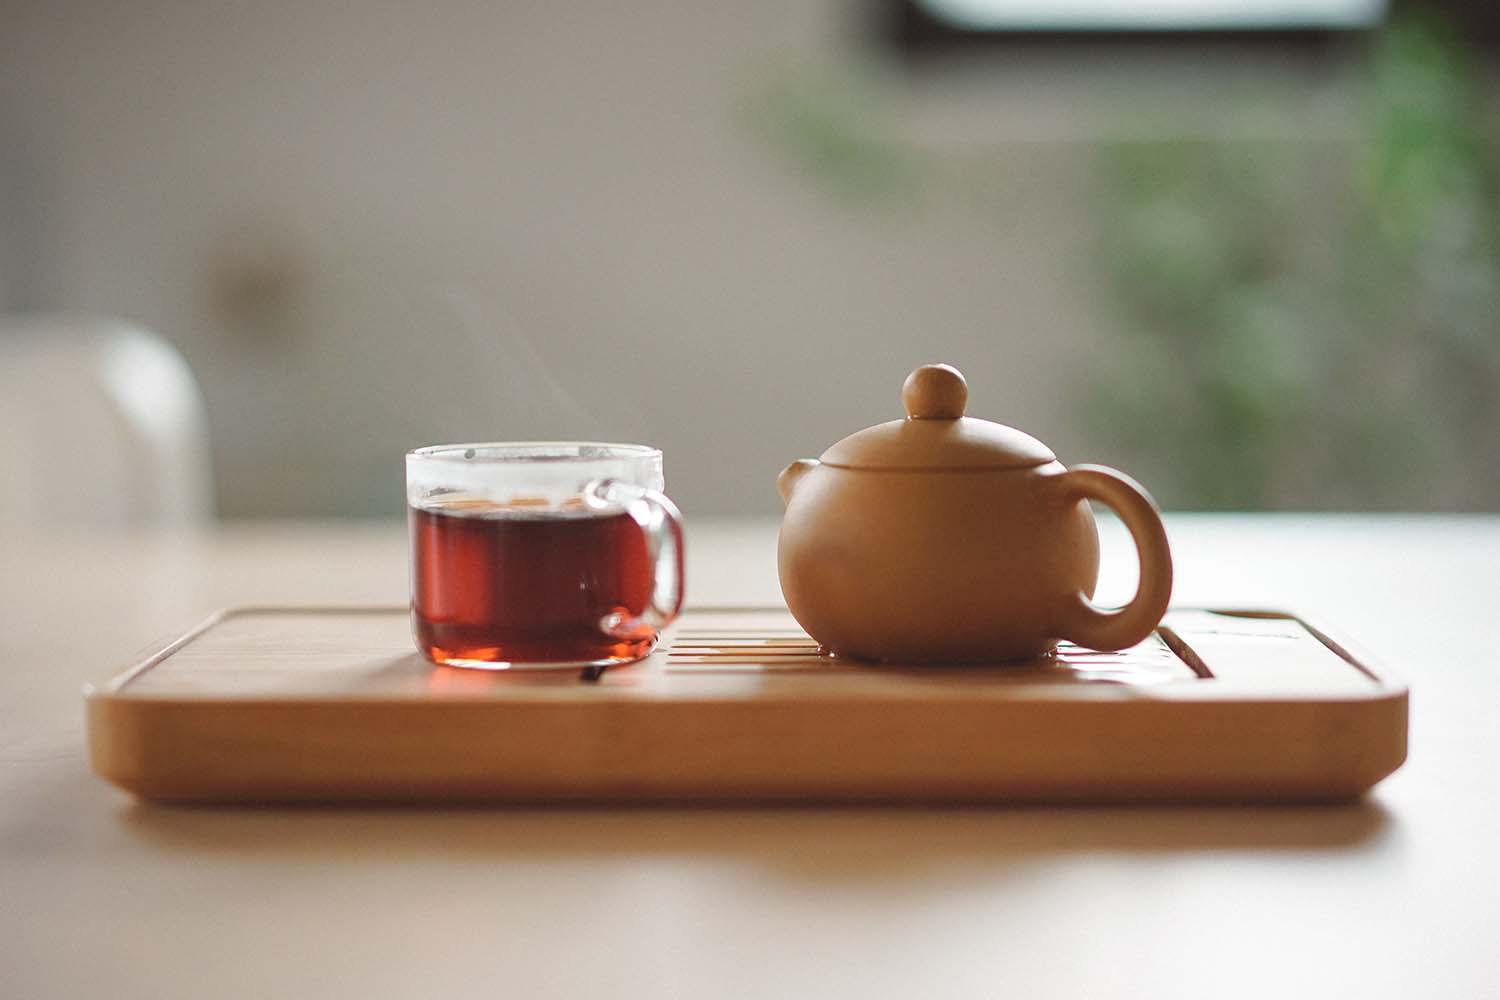 Tea Culture in Different Corners of the World